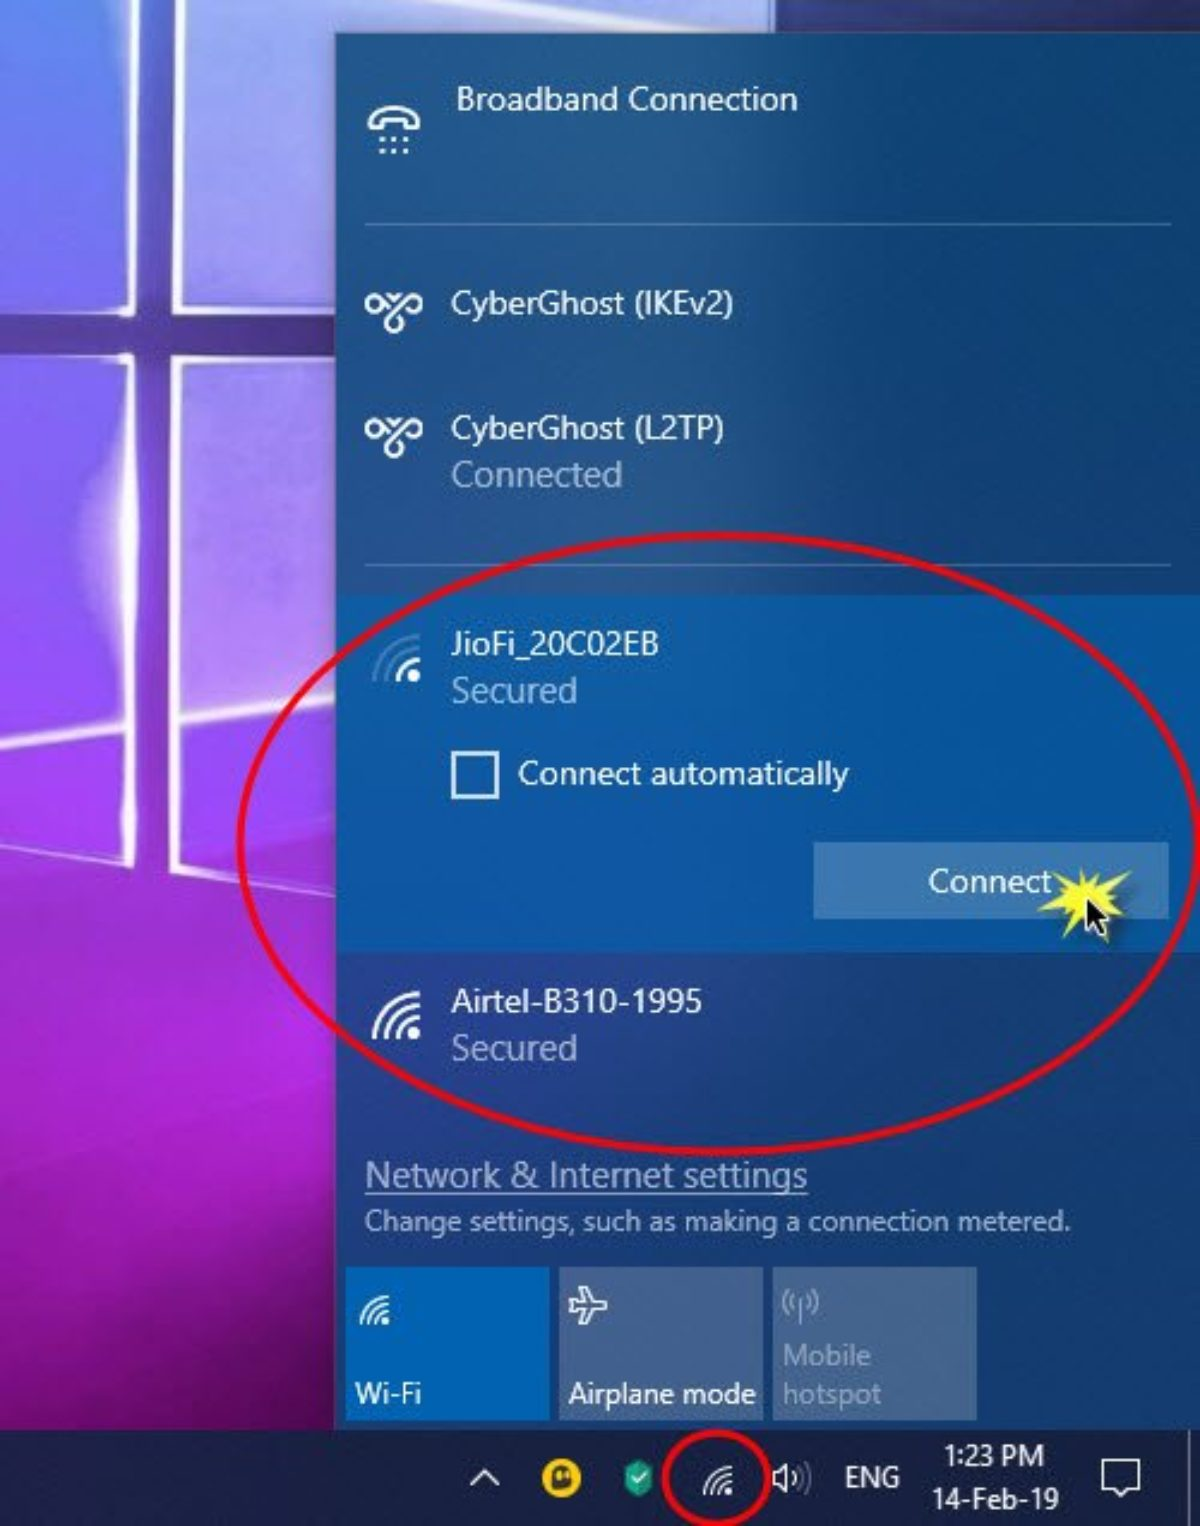 How to set up an Internet connection on Windows 10